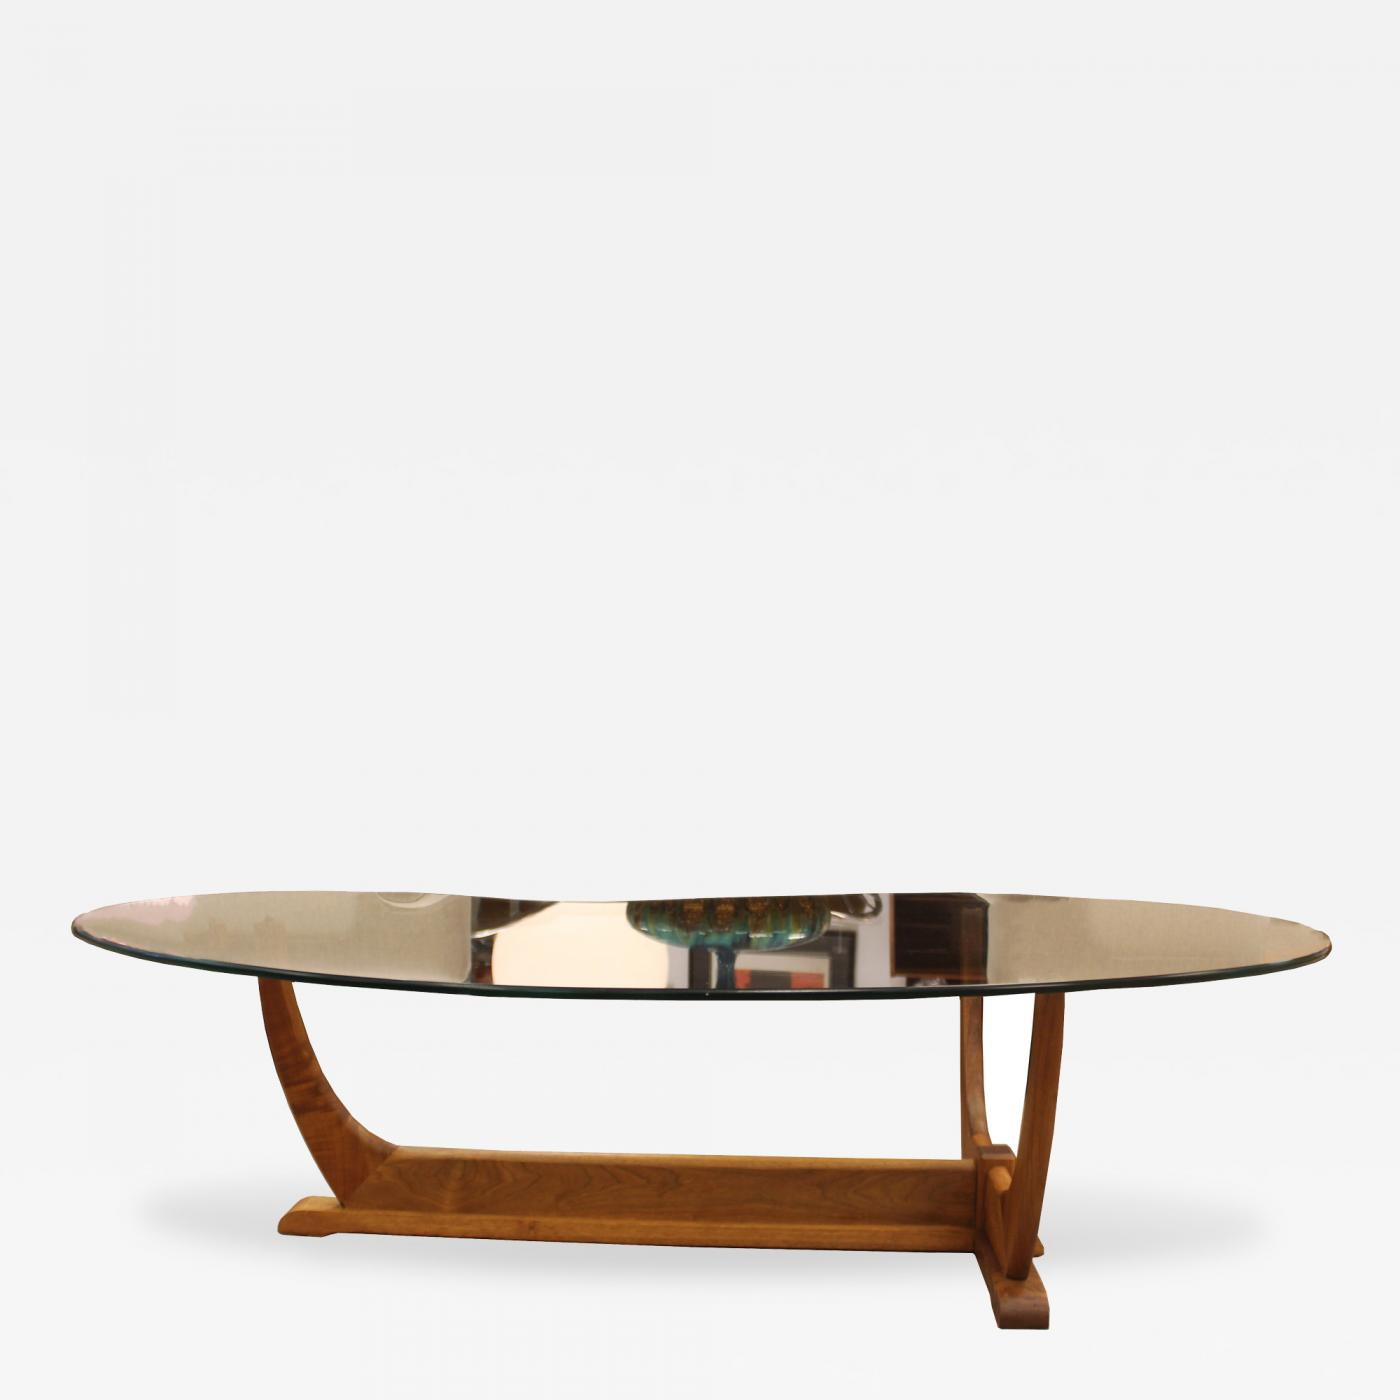 furniture alluring kidney shaped coffee table with futuristic movable side coolest tables wooden center glass round mid century measurements bean accent wine colored tablecloth